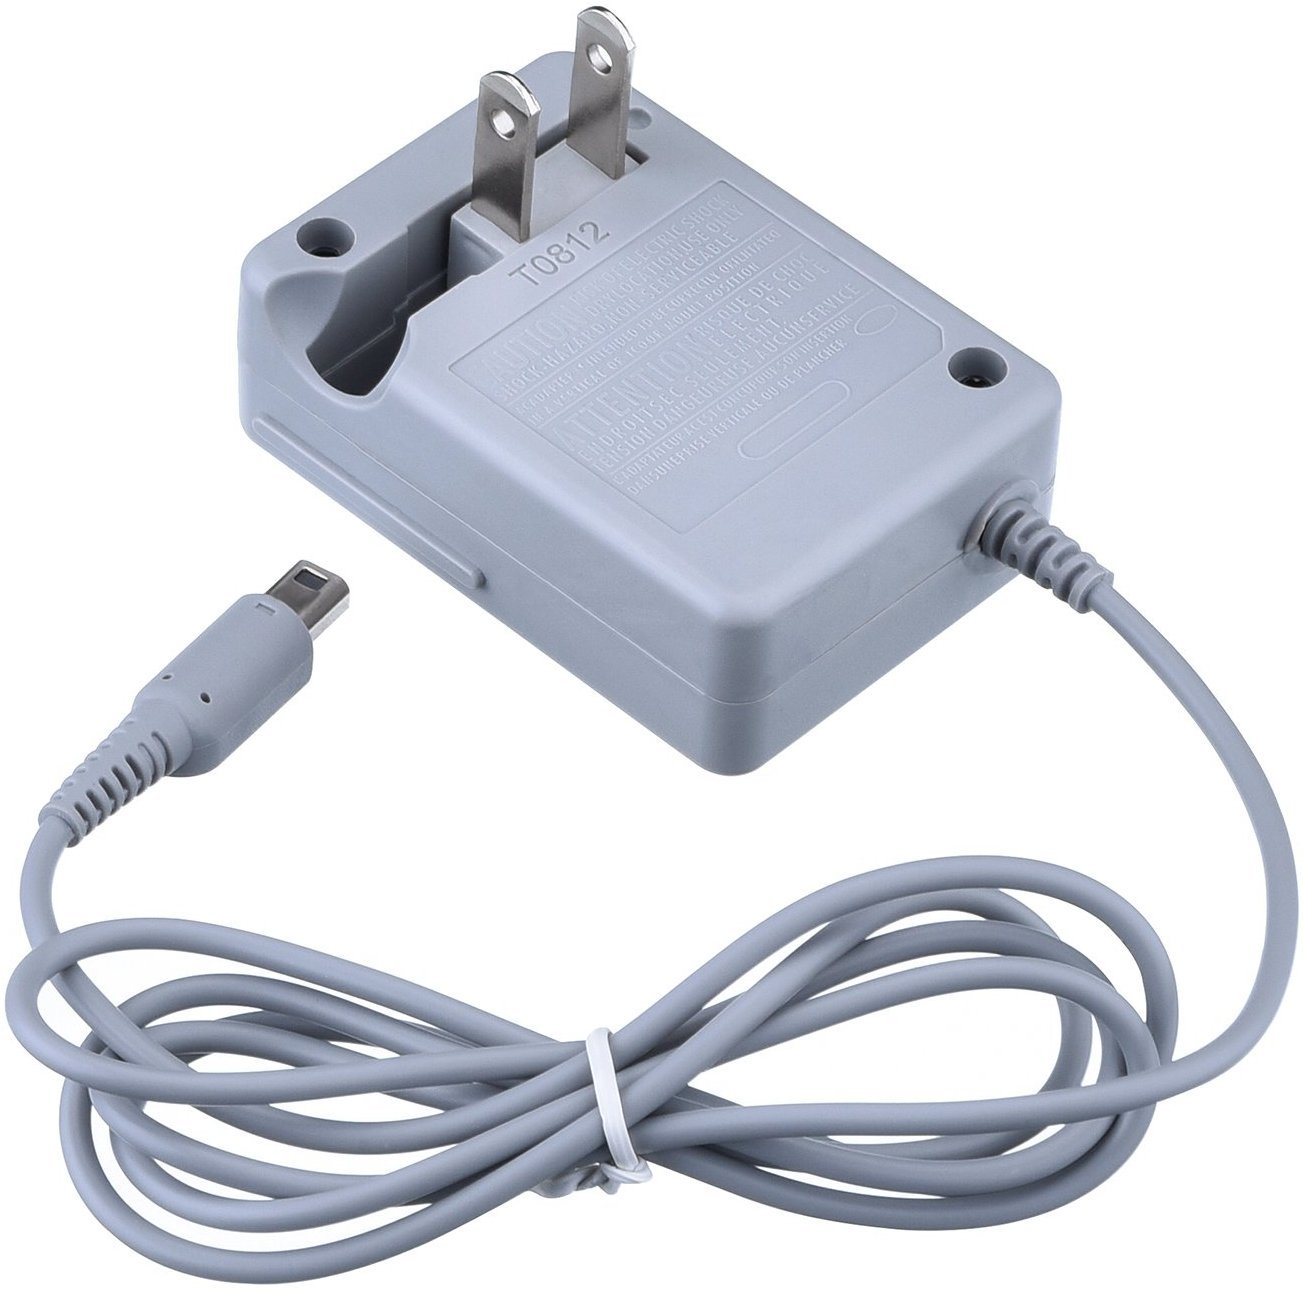 StyleZ AC Adapter Charger Home Travel Charger Wall Plug Power Adapter (100-240 v) for Nintendo 3DS/ 3DSXL/ DSI/DSIXL